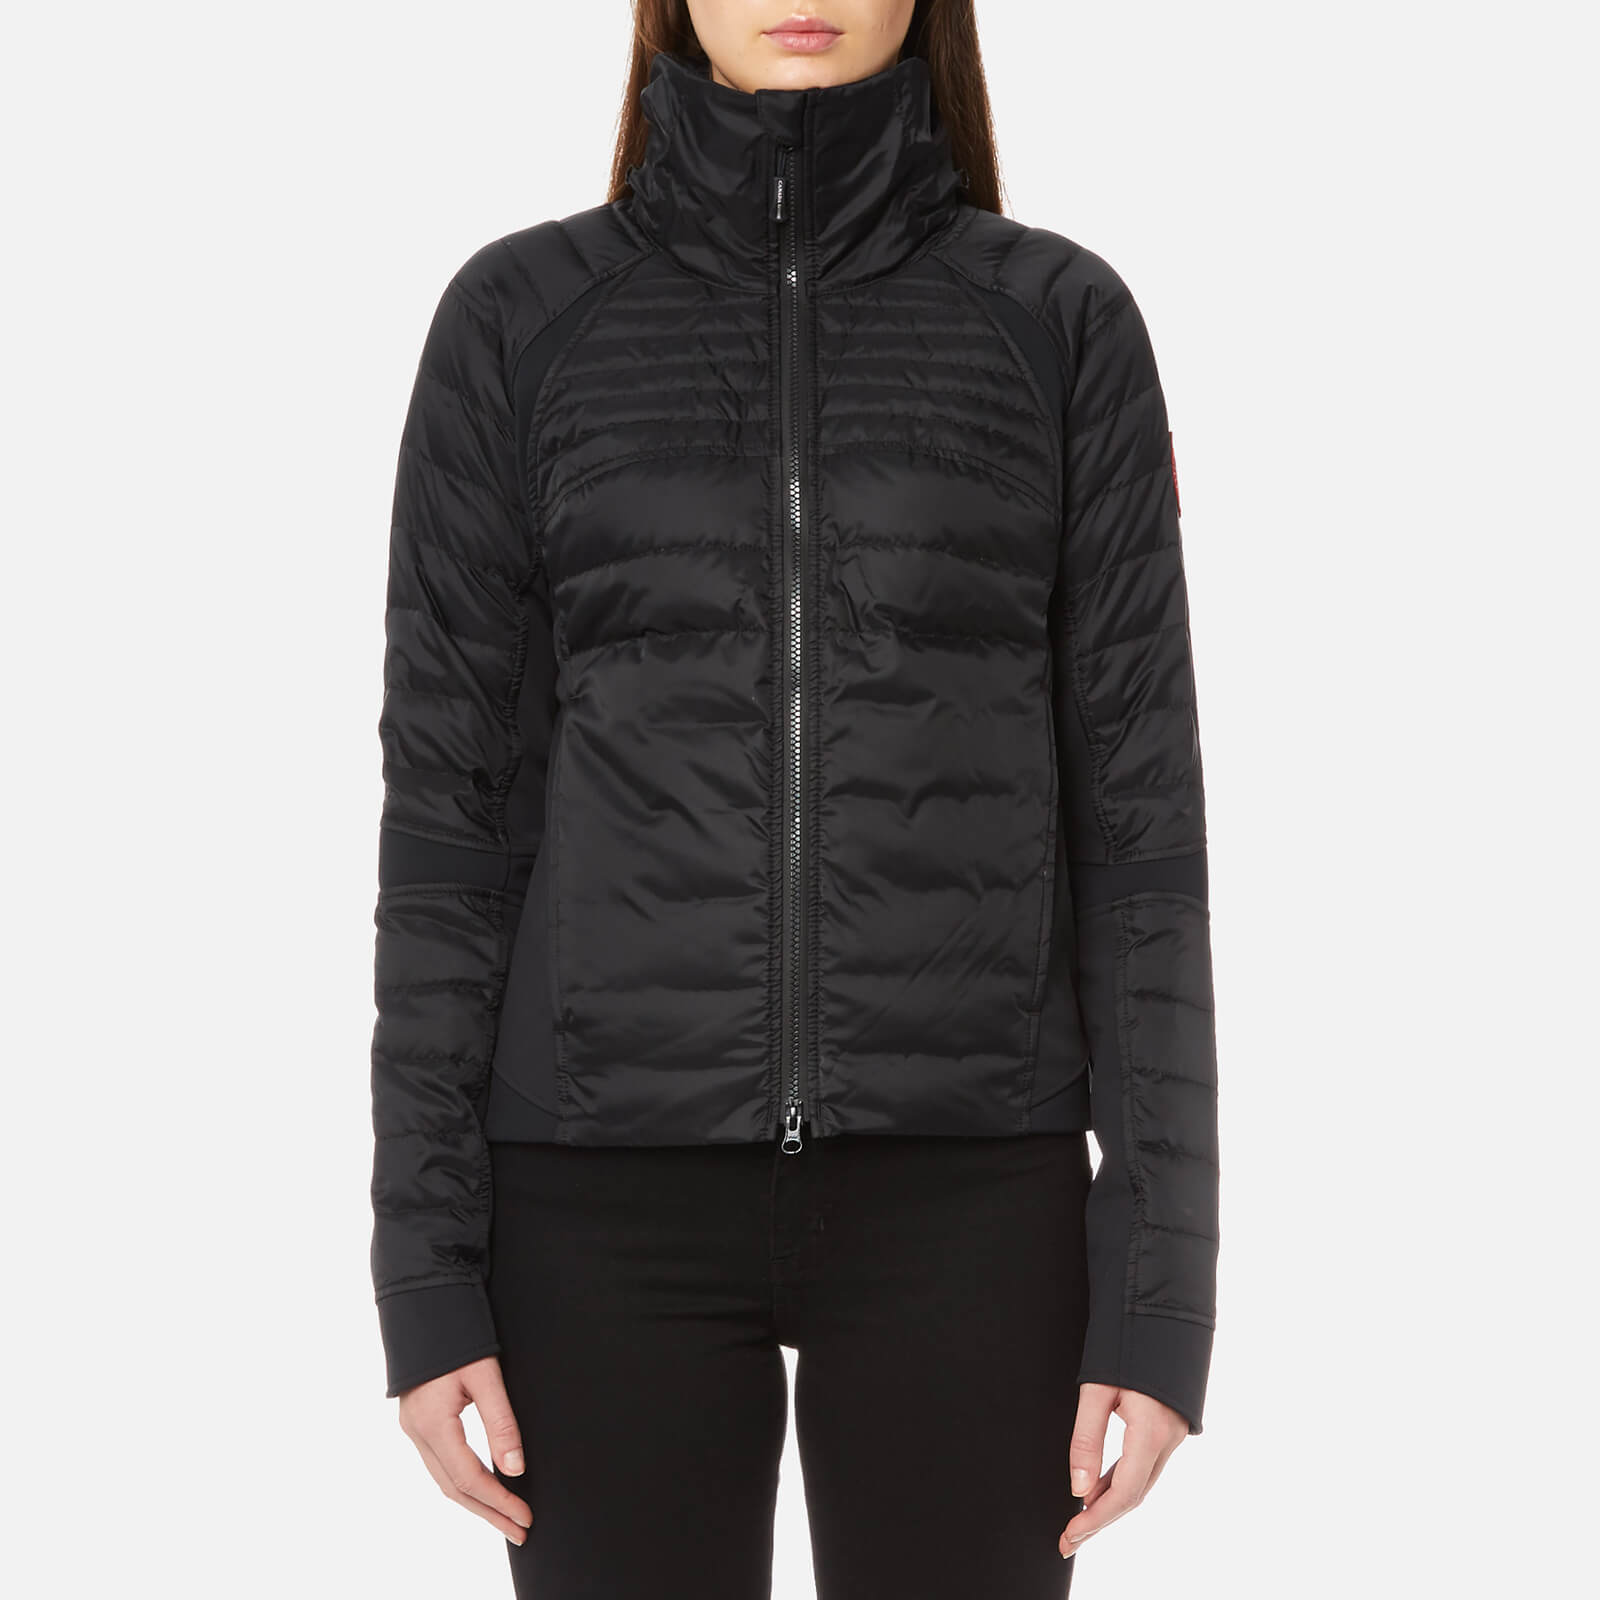 7173a9e495ef0 Canada Goose Women's Hybridge Perren Jacket - Black - Free UK Delivery over  £50